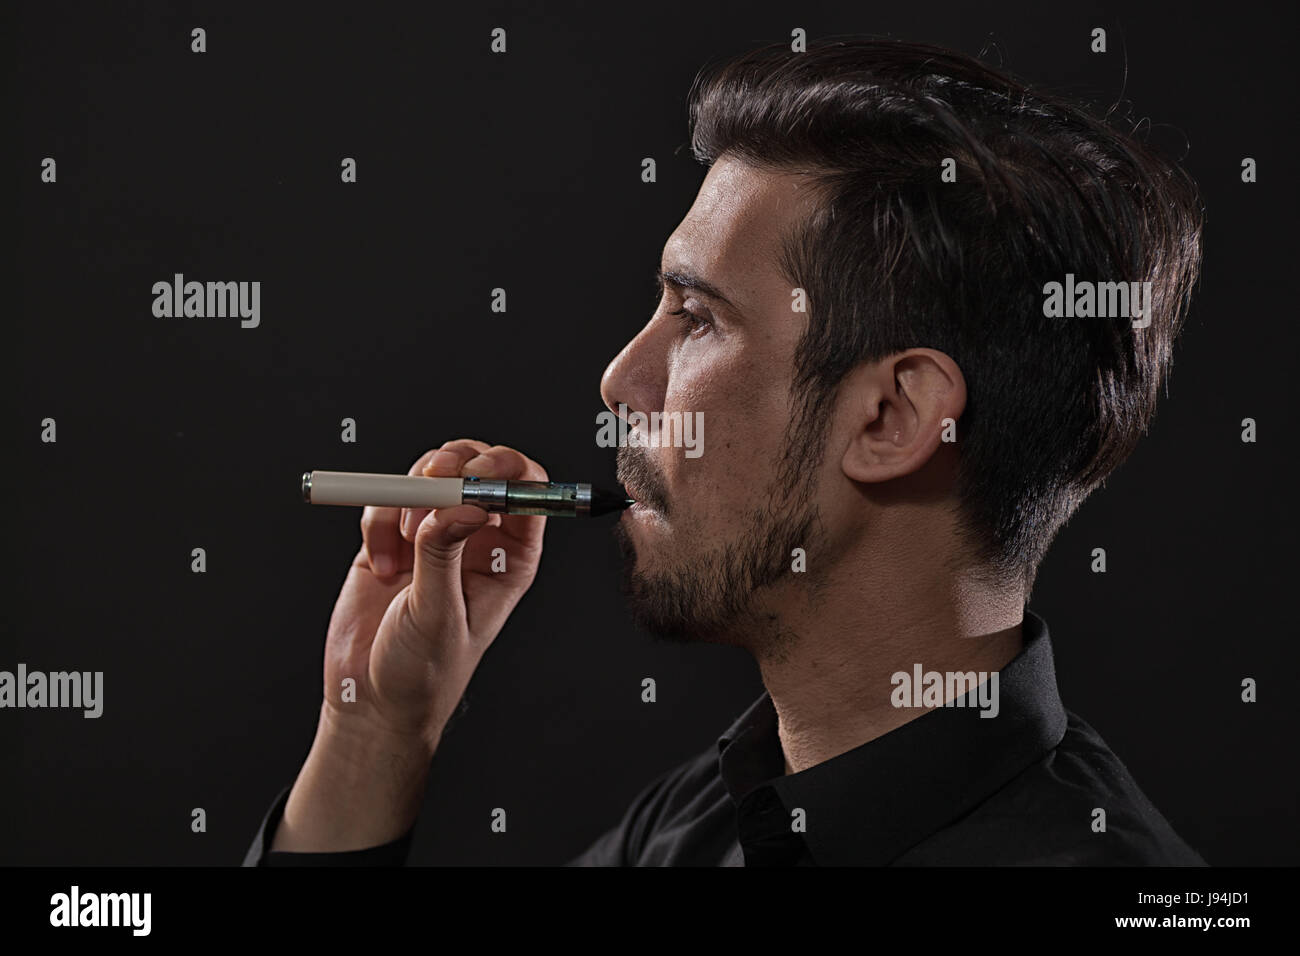 Portrait of man who is smoking electronic cigarette. - Stock Image